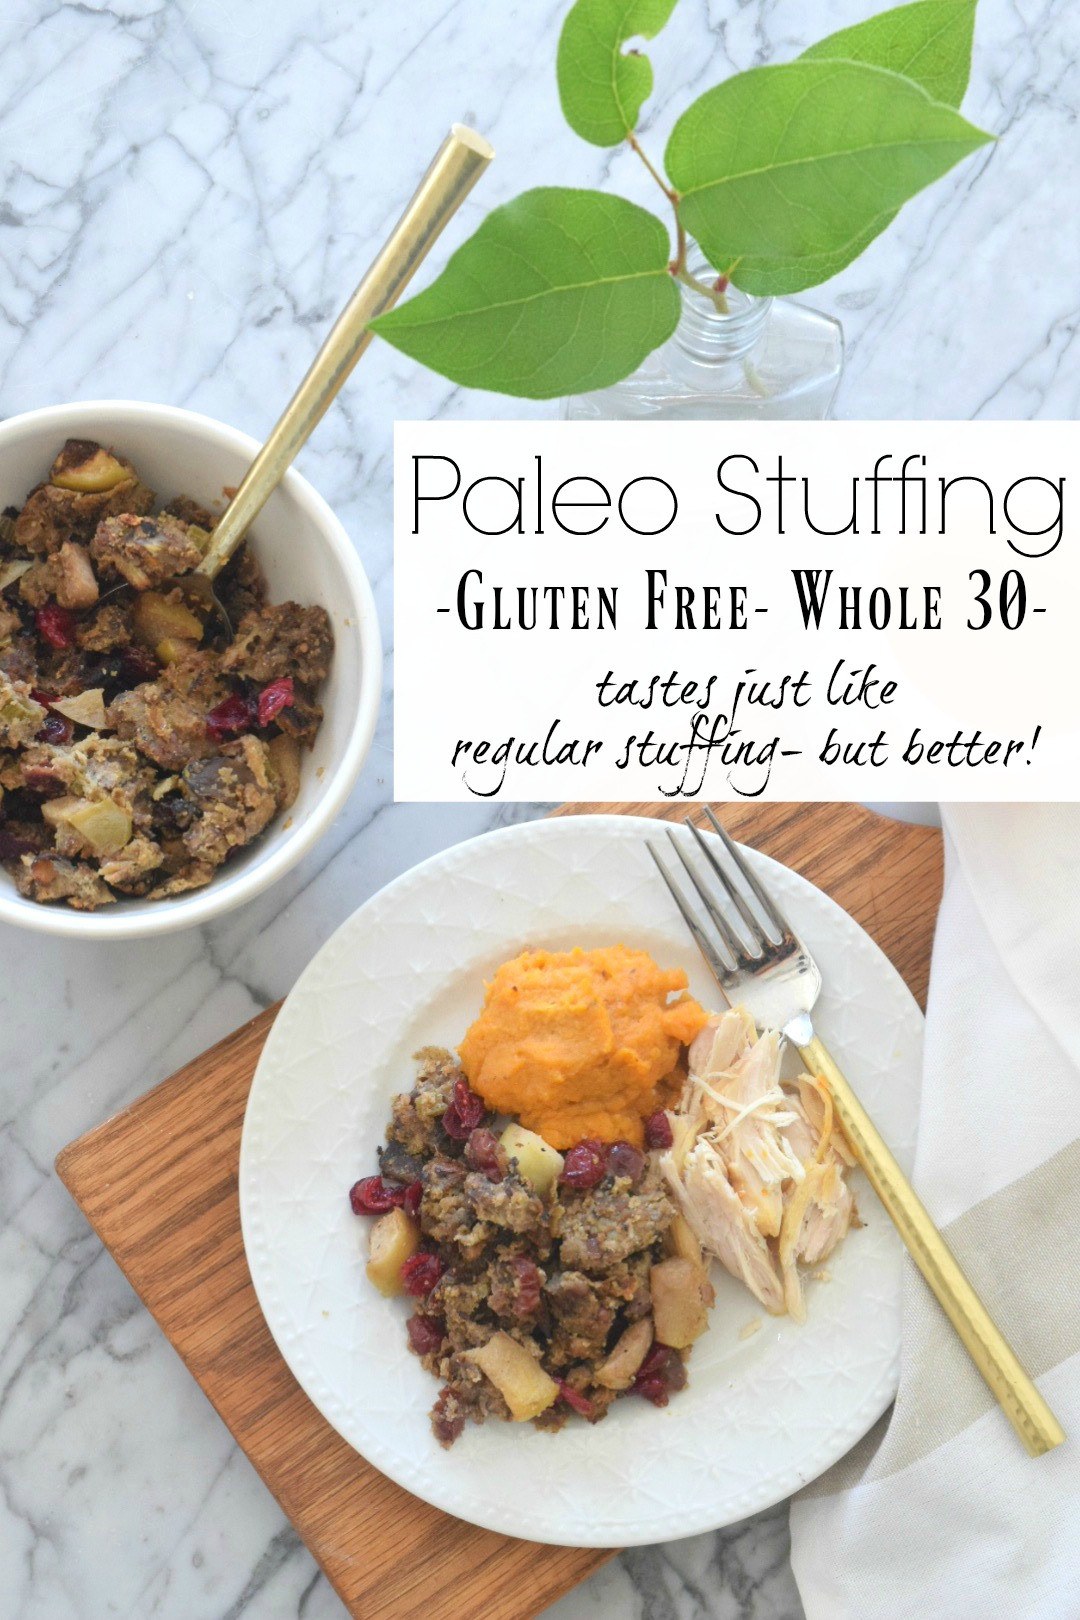 Paleo Thanksgiving Sides  Paleo Stuffing Healthy Thanksgiving Side Nesting With Grace